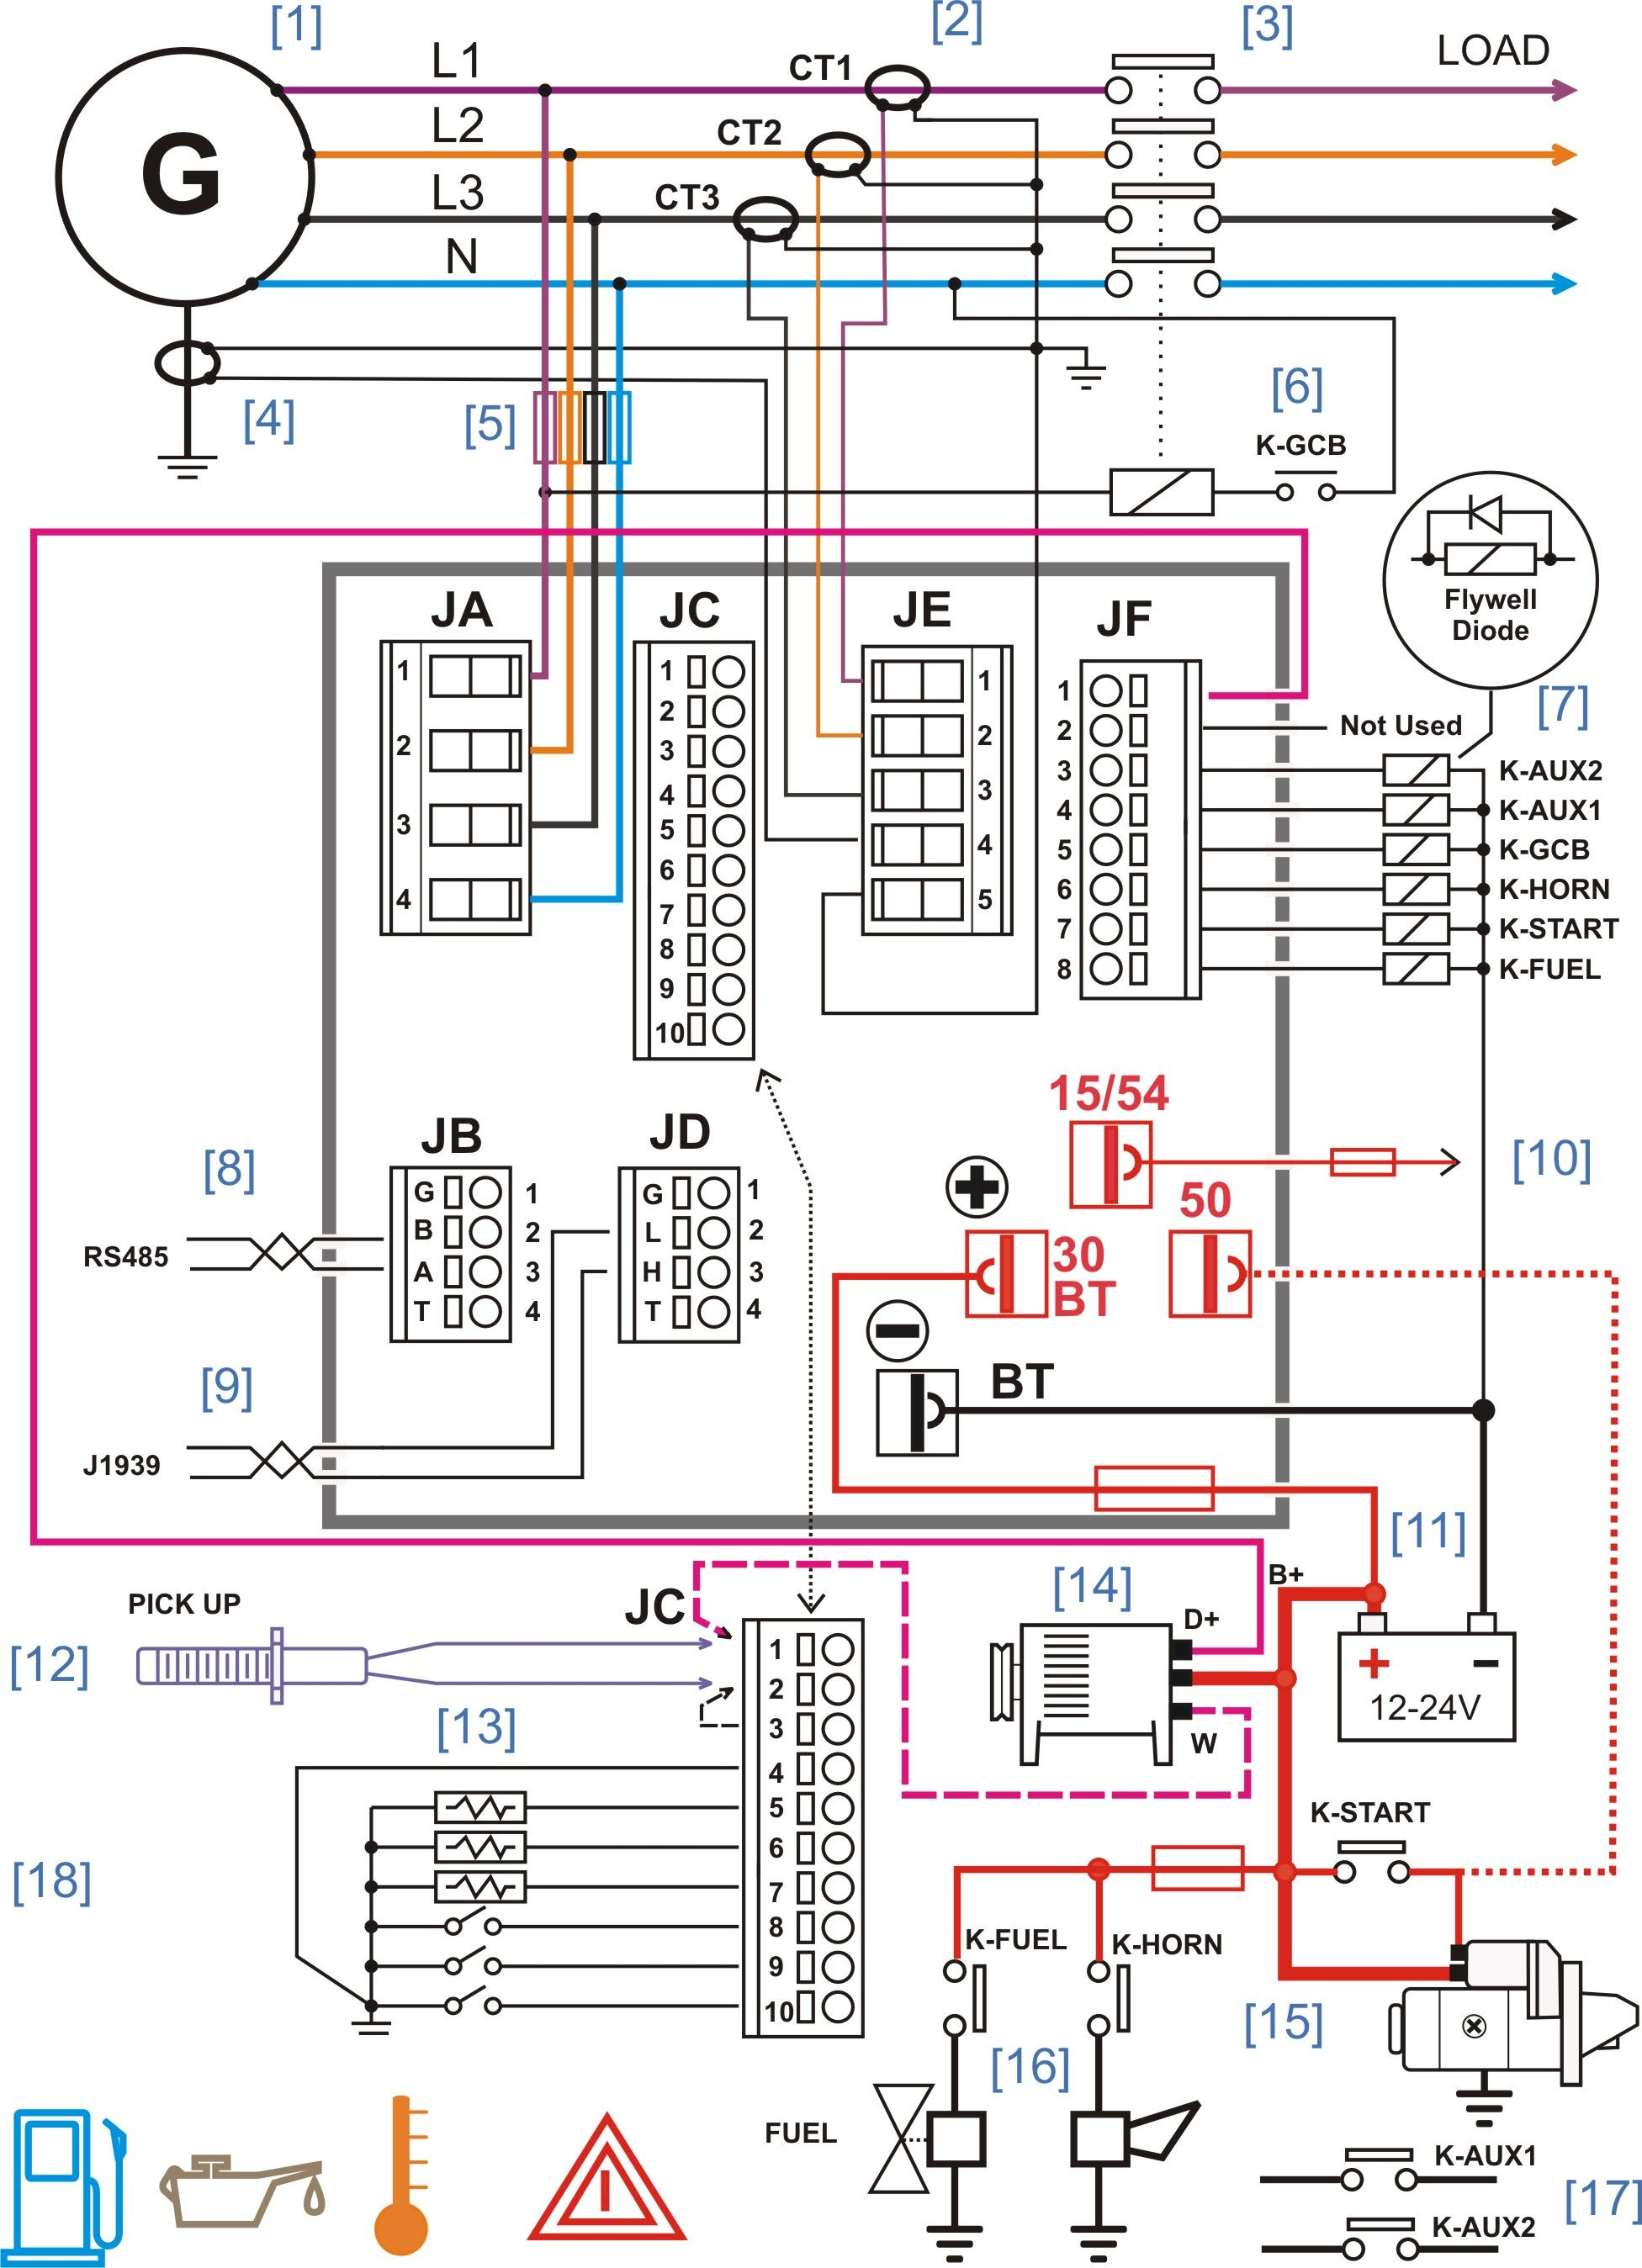 diesel generator control panel wiring diagram diesel generators in 4707  guardian generator wire diagram diesel generator